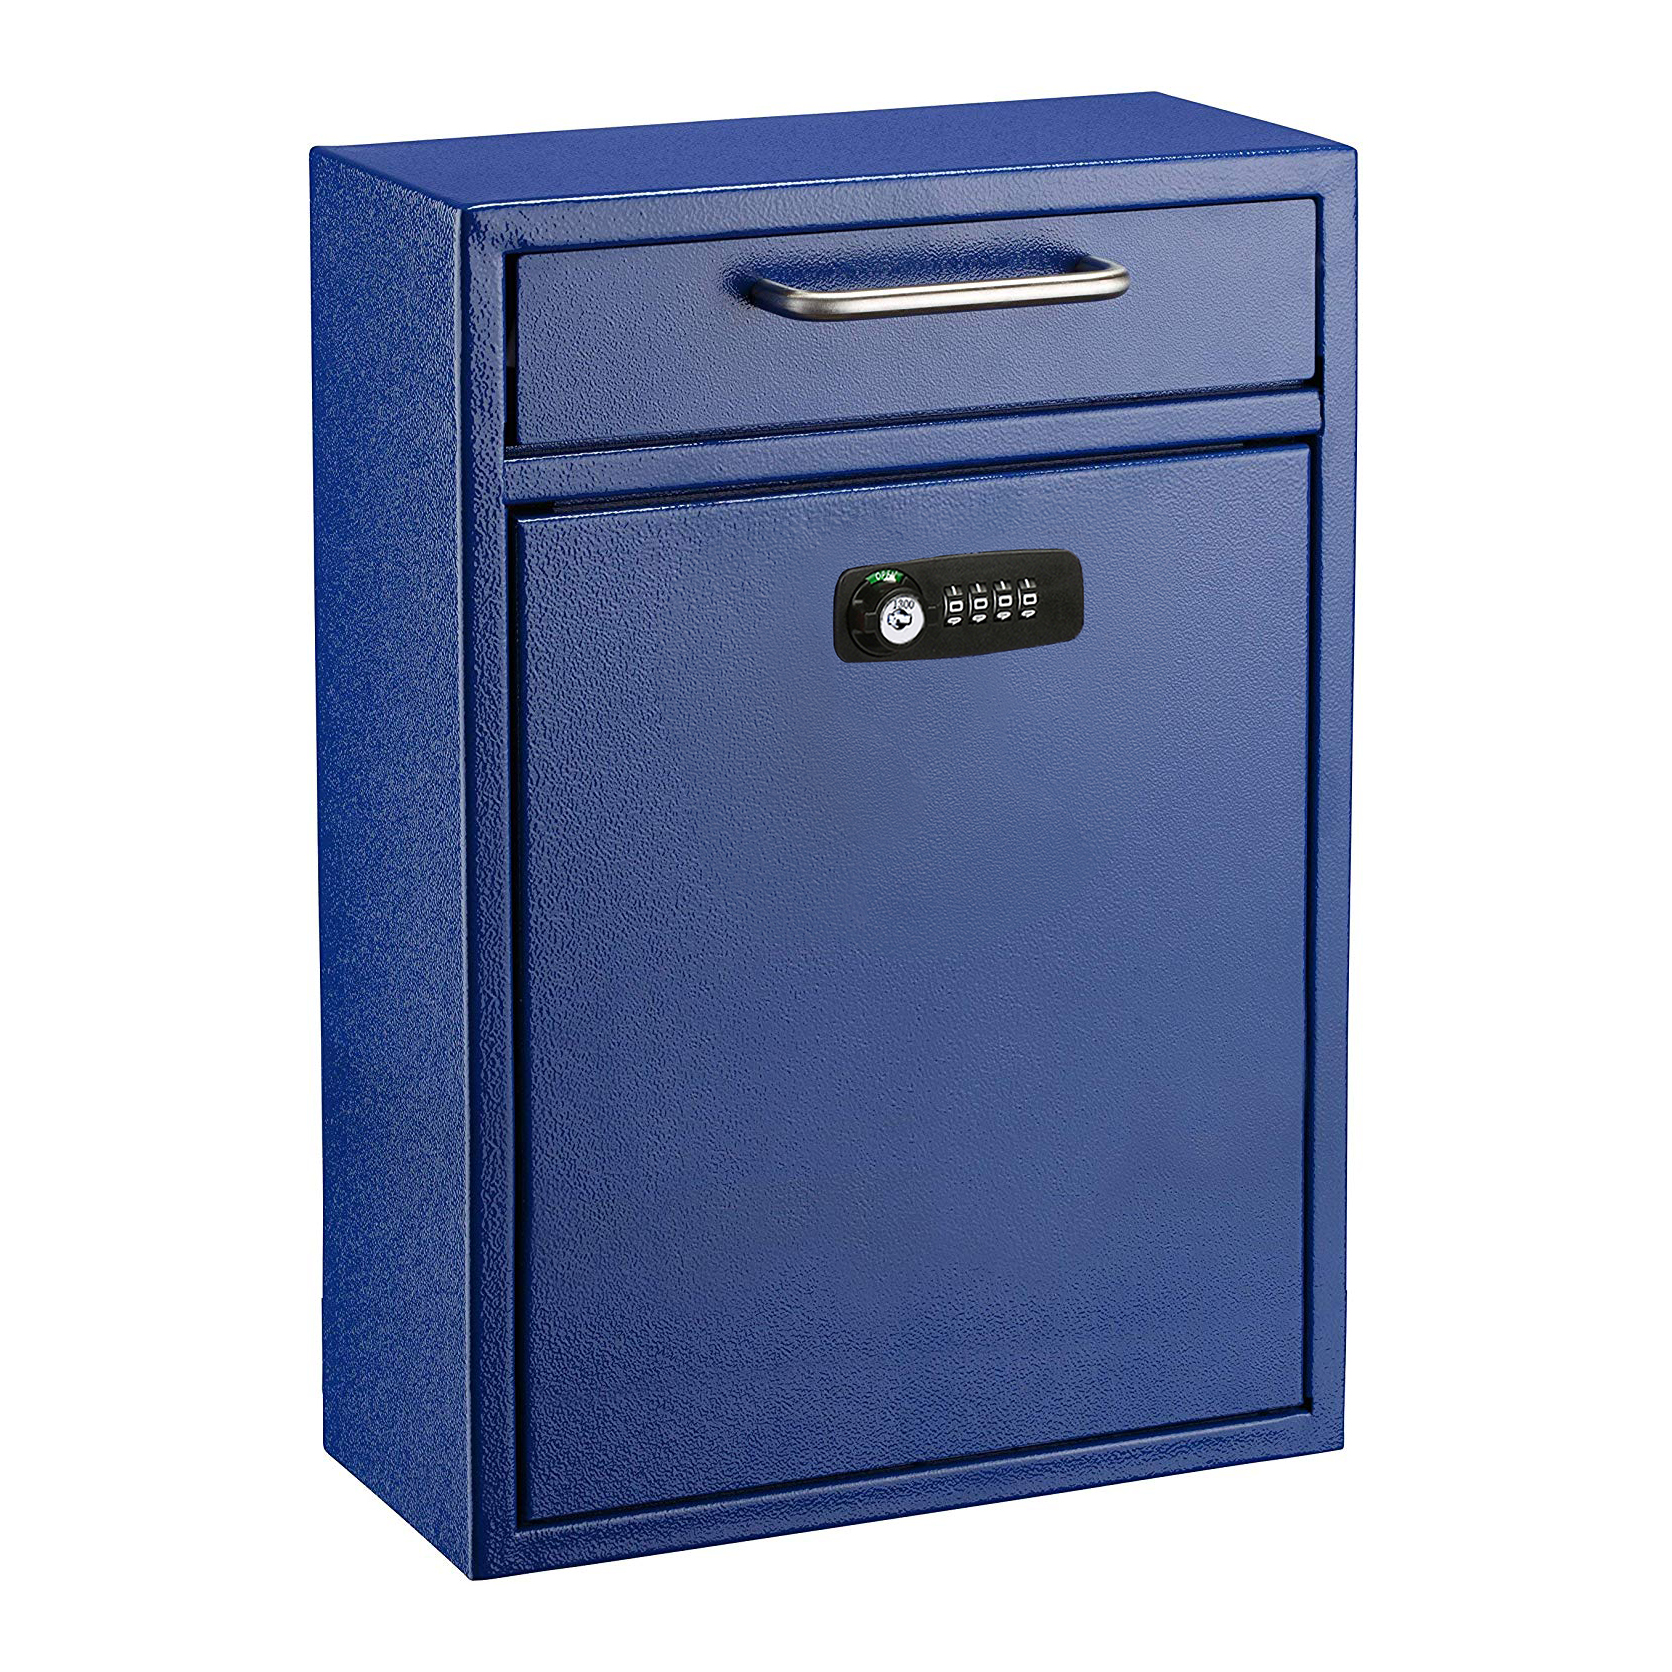 Ultimate Drop Box Wall Mounted Mail Box with Key and Combination lock, Large